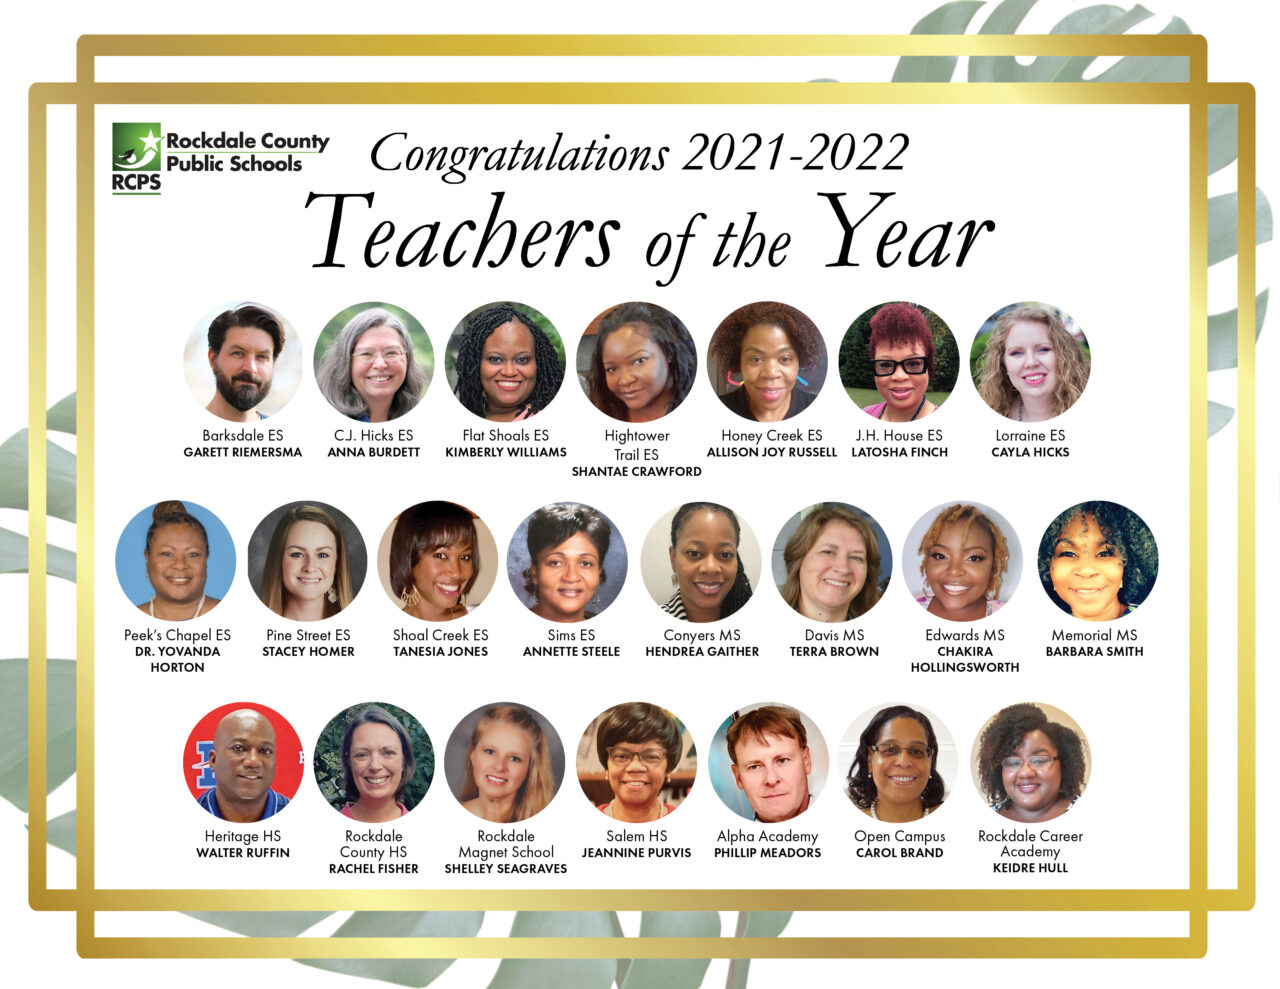 RCPS-TOTY-2021-2022-group-1280x989.jpg